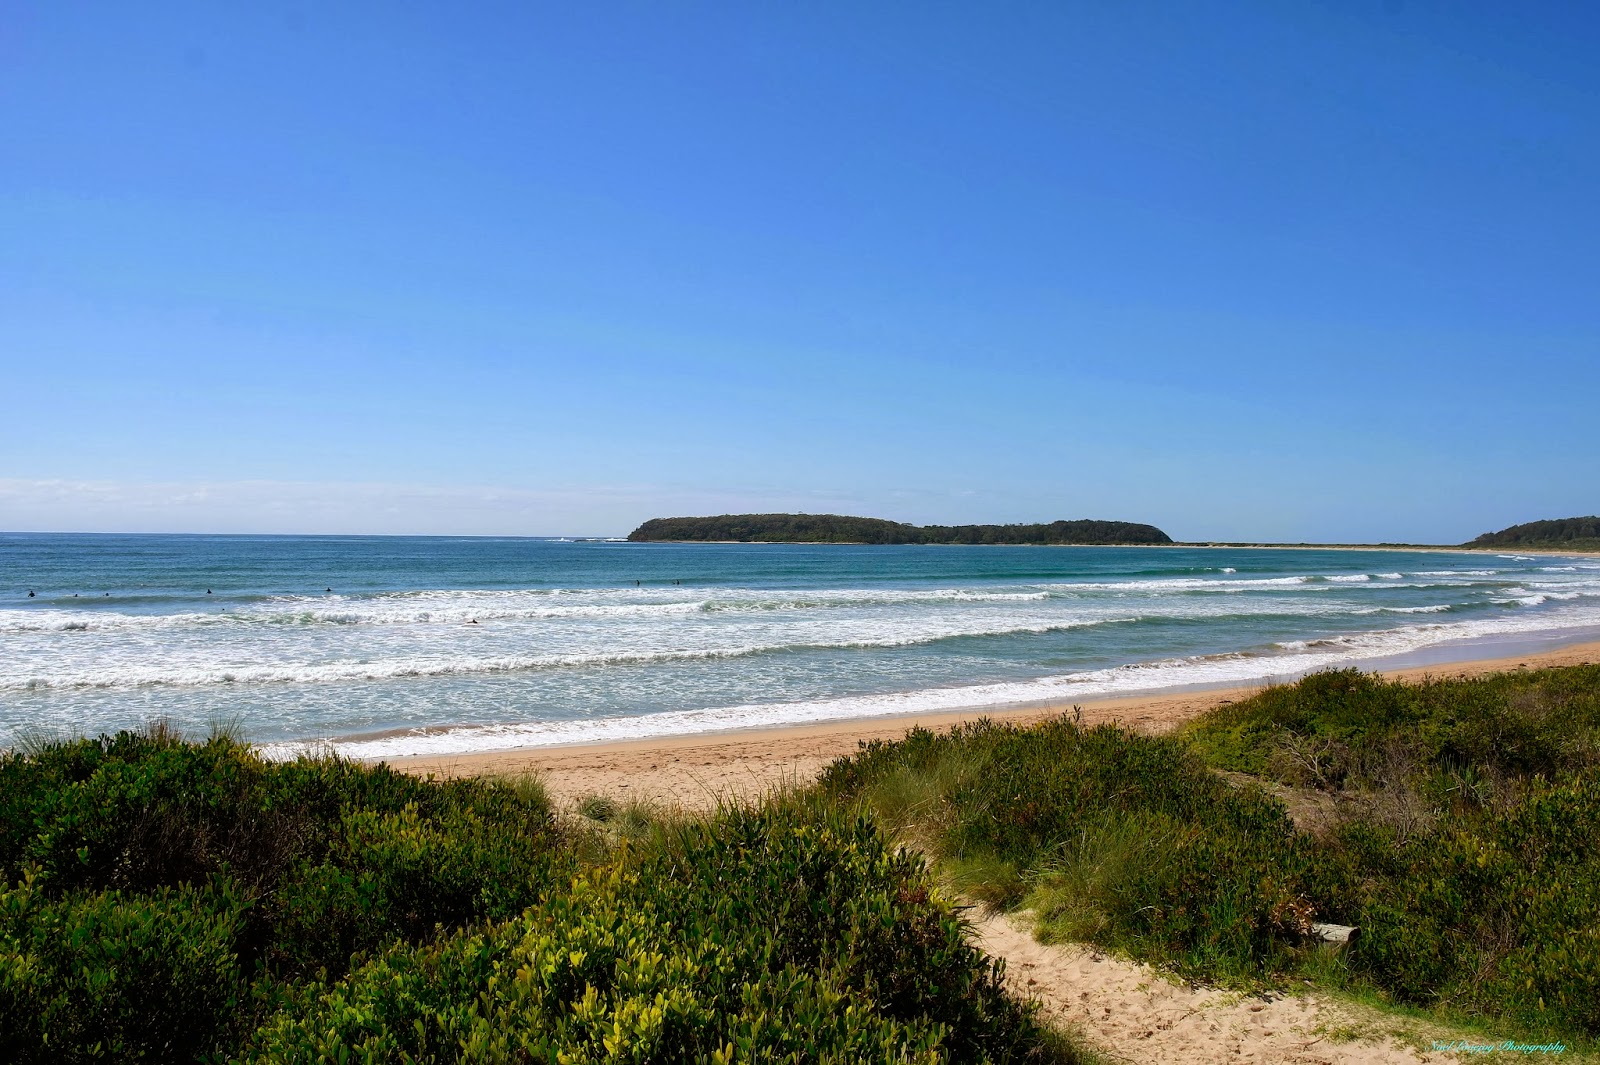 Moruya Australia  city photo : Broulee North Beach, plenty of Surfers here but not much wave action ...